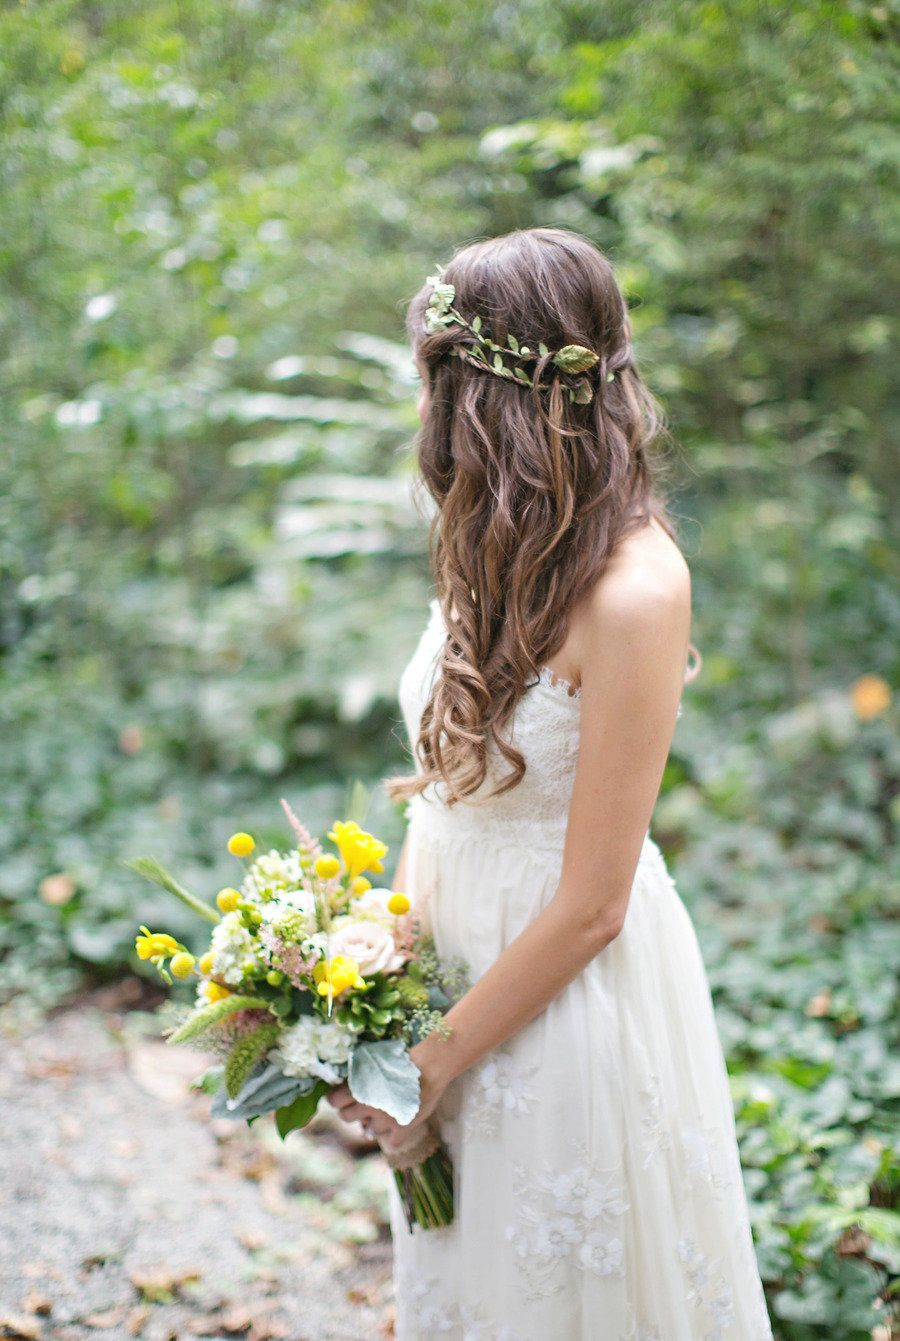 Wedding hairstyles floral crown w e d pinterest wedding hair wedding hairstyles long hair flower crownwedding hairstyle pictures wedding hair floral crownflower crown wedding hairwedding hairstyle floral crown izmirmasajfo